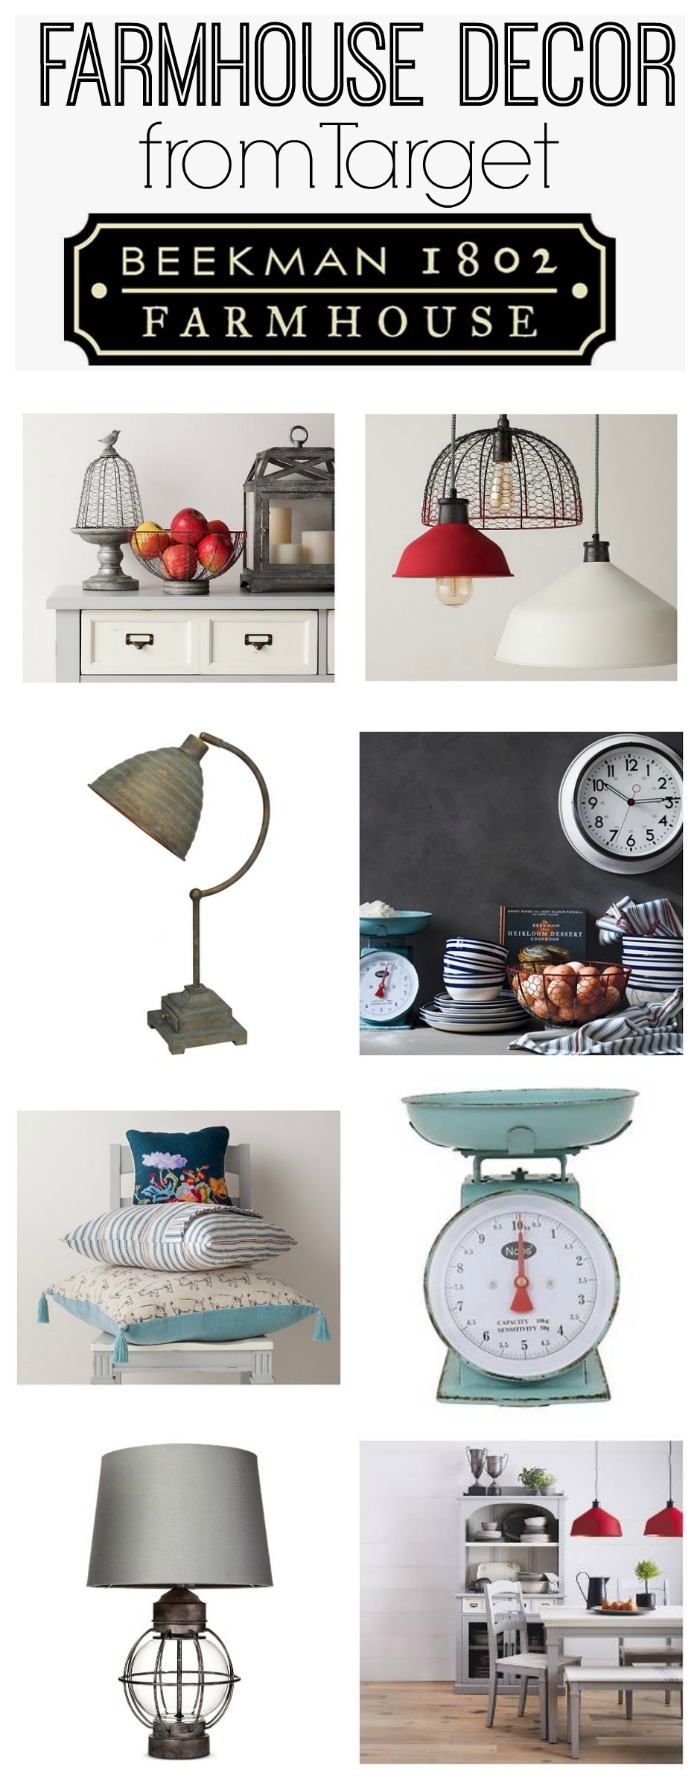 Elegant Beekman Farmhouse Collection at Target great farmhouse decor at affordable prices